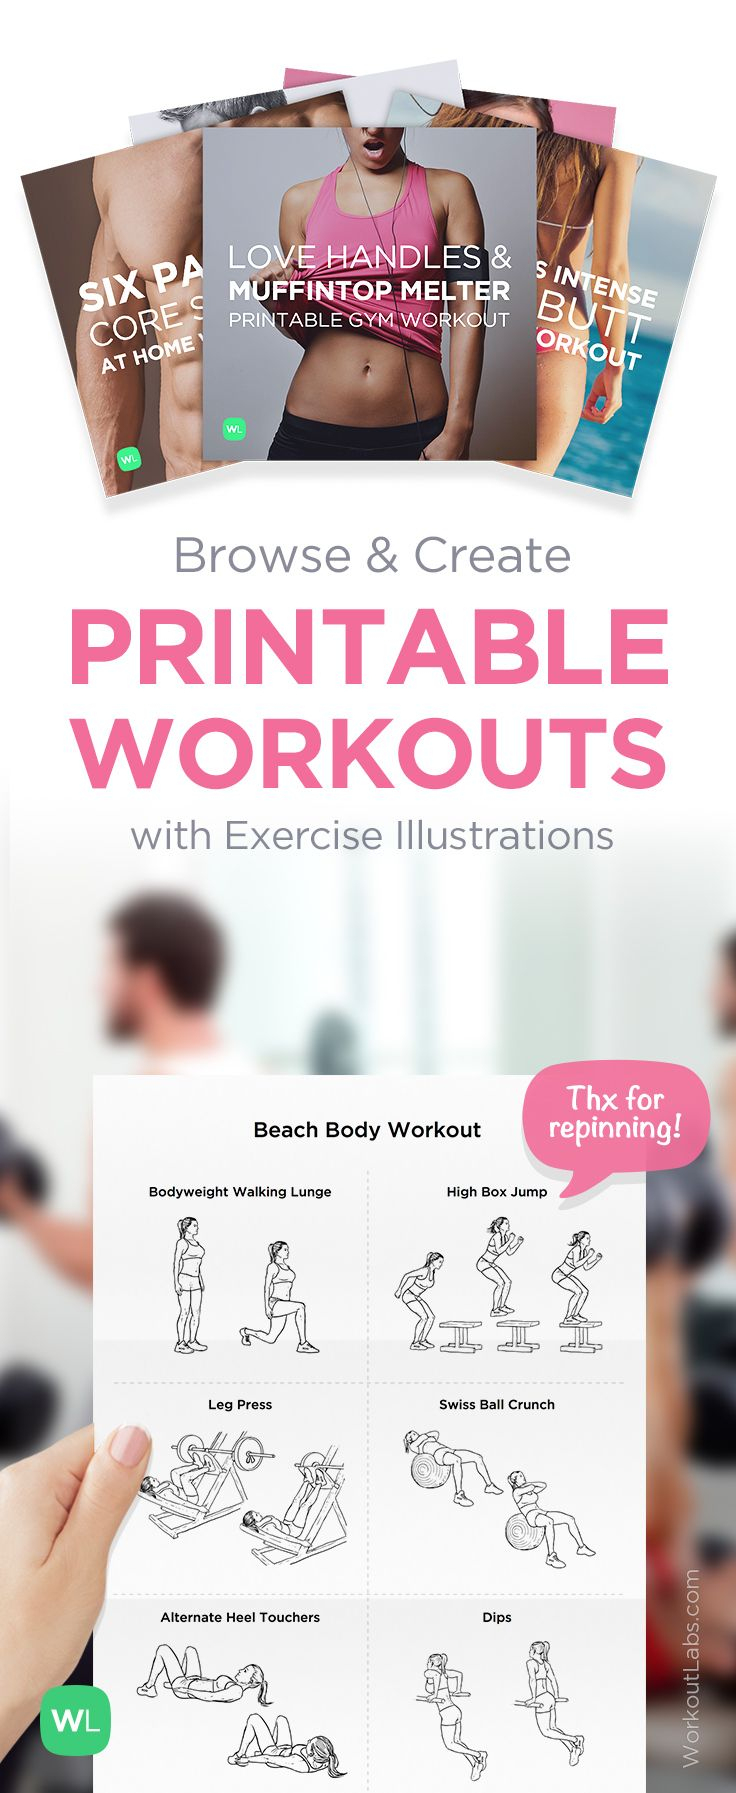 Free Printable Routines, Workout Packs And Exercise Programs - Free Printable Gym Workout Routines